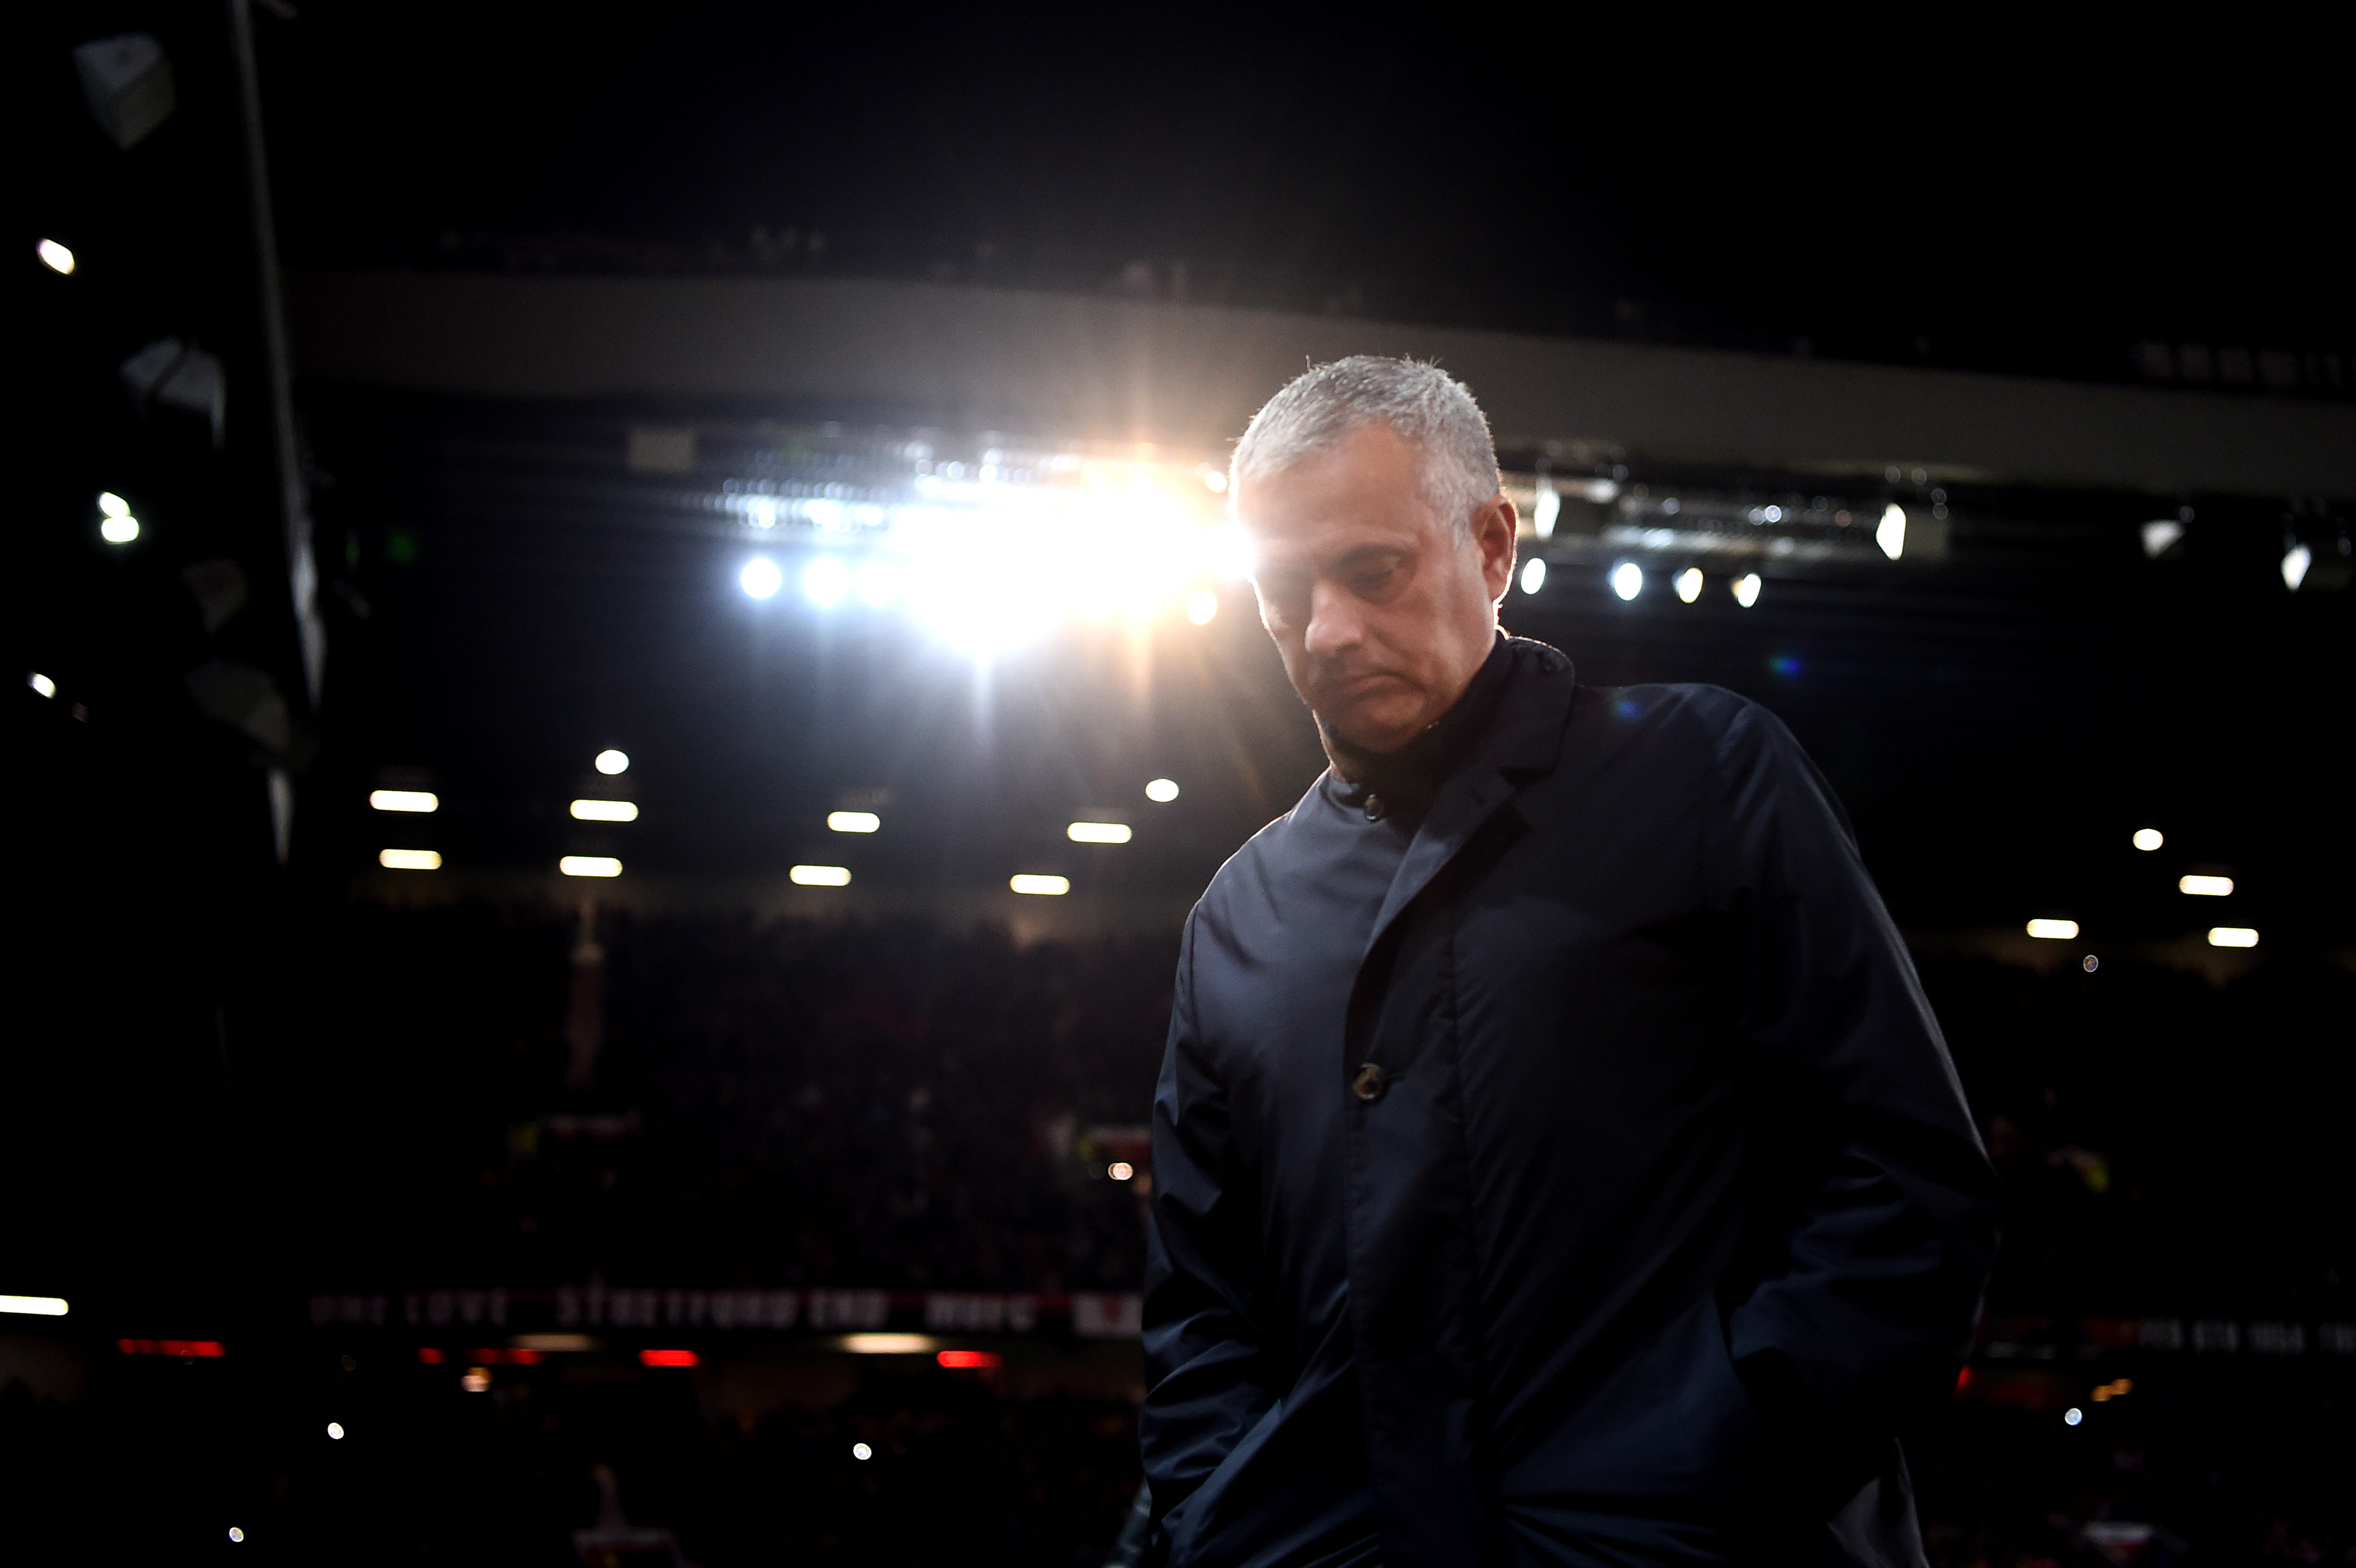 José Mourinho revisionism is lazy, unproductive, and reactionary